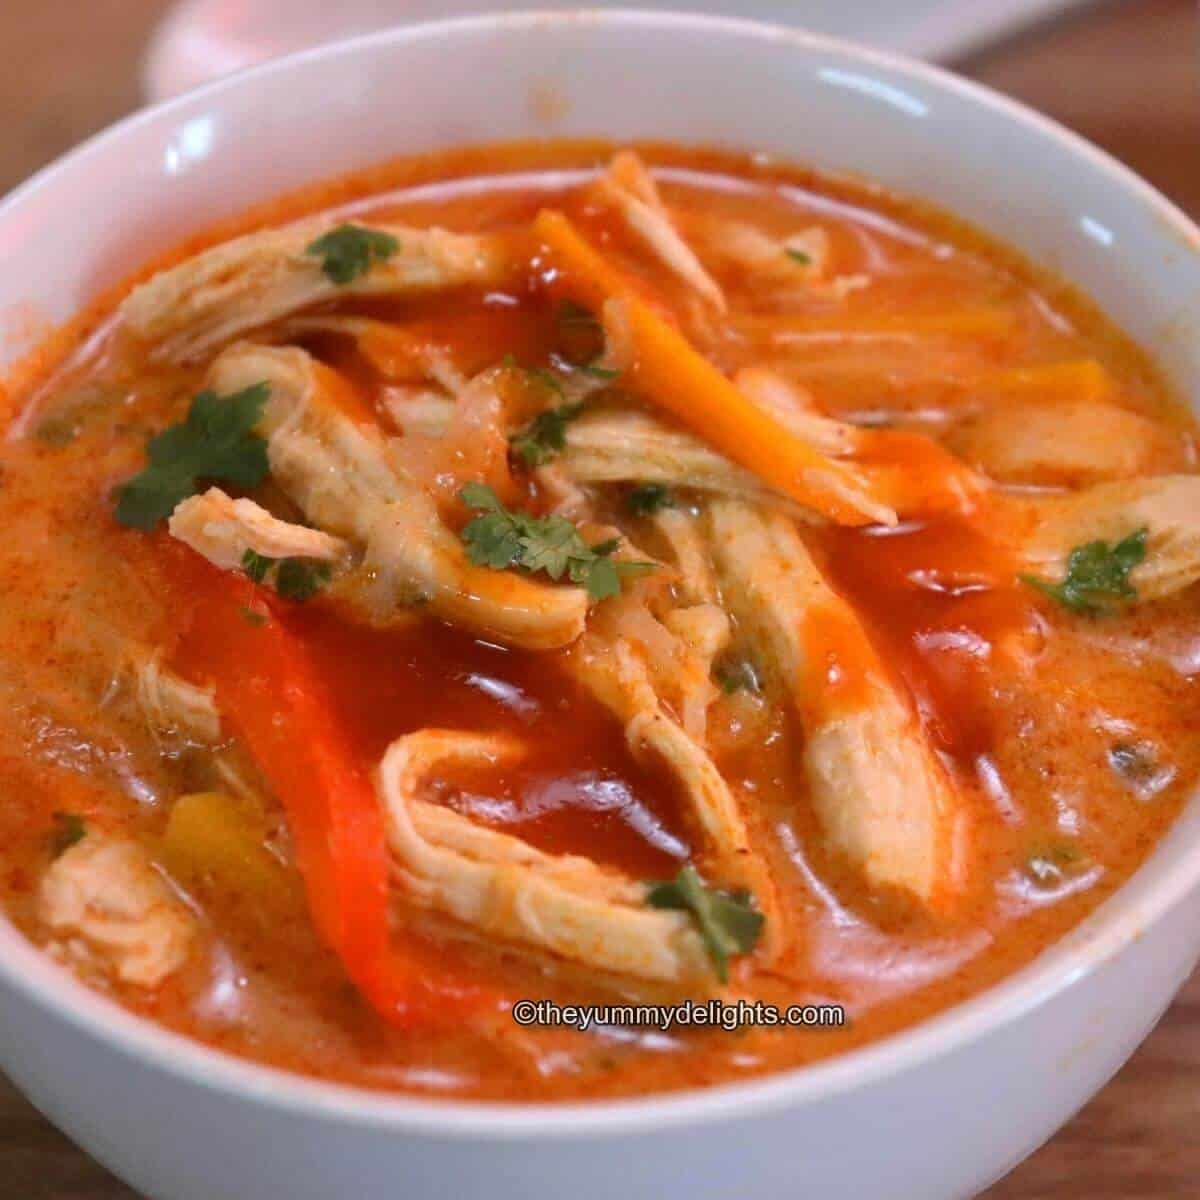 Thai chicken soup with rice noodles served in a white bowl. Garnished with cilantro & sriracha.